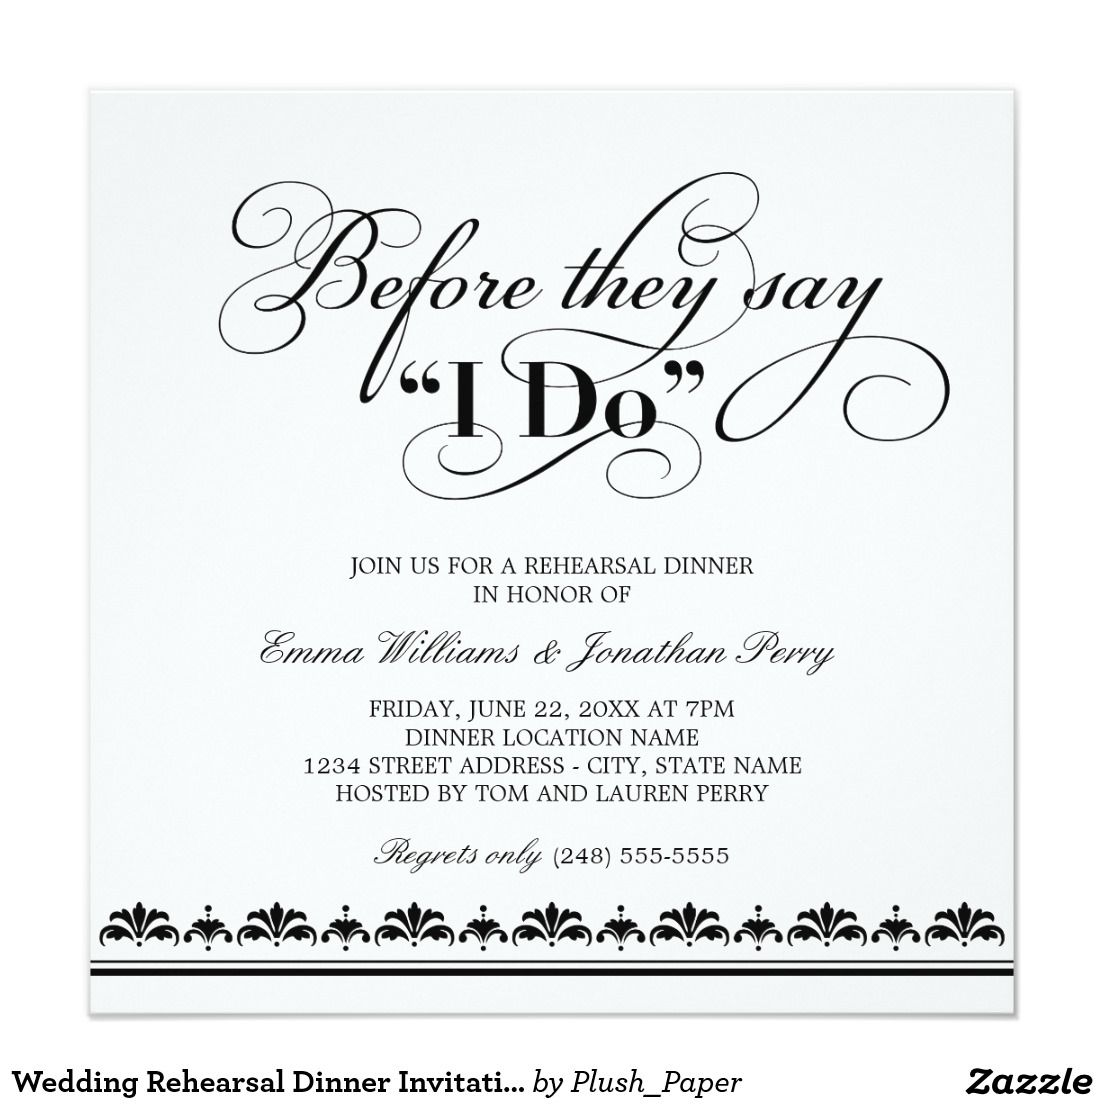 Wedding Rehearsal Dinner Invitation | Wedding Vows | Rehearsal ...